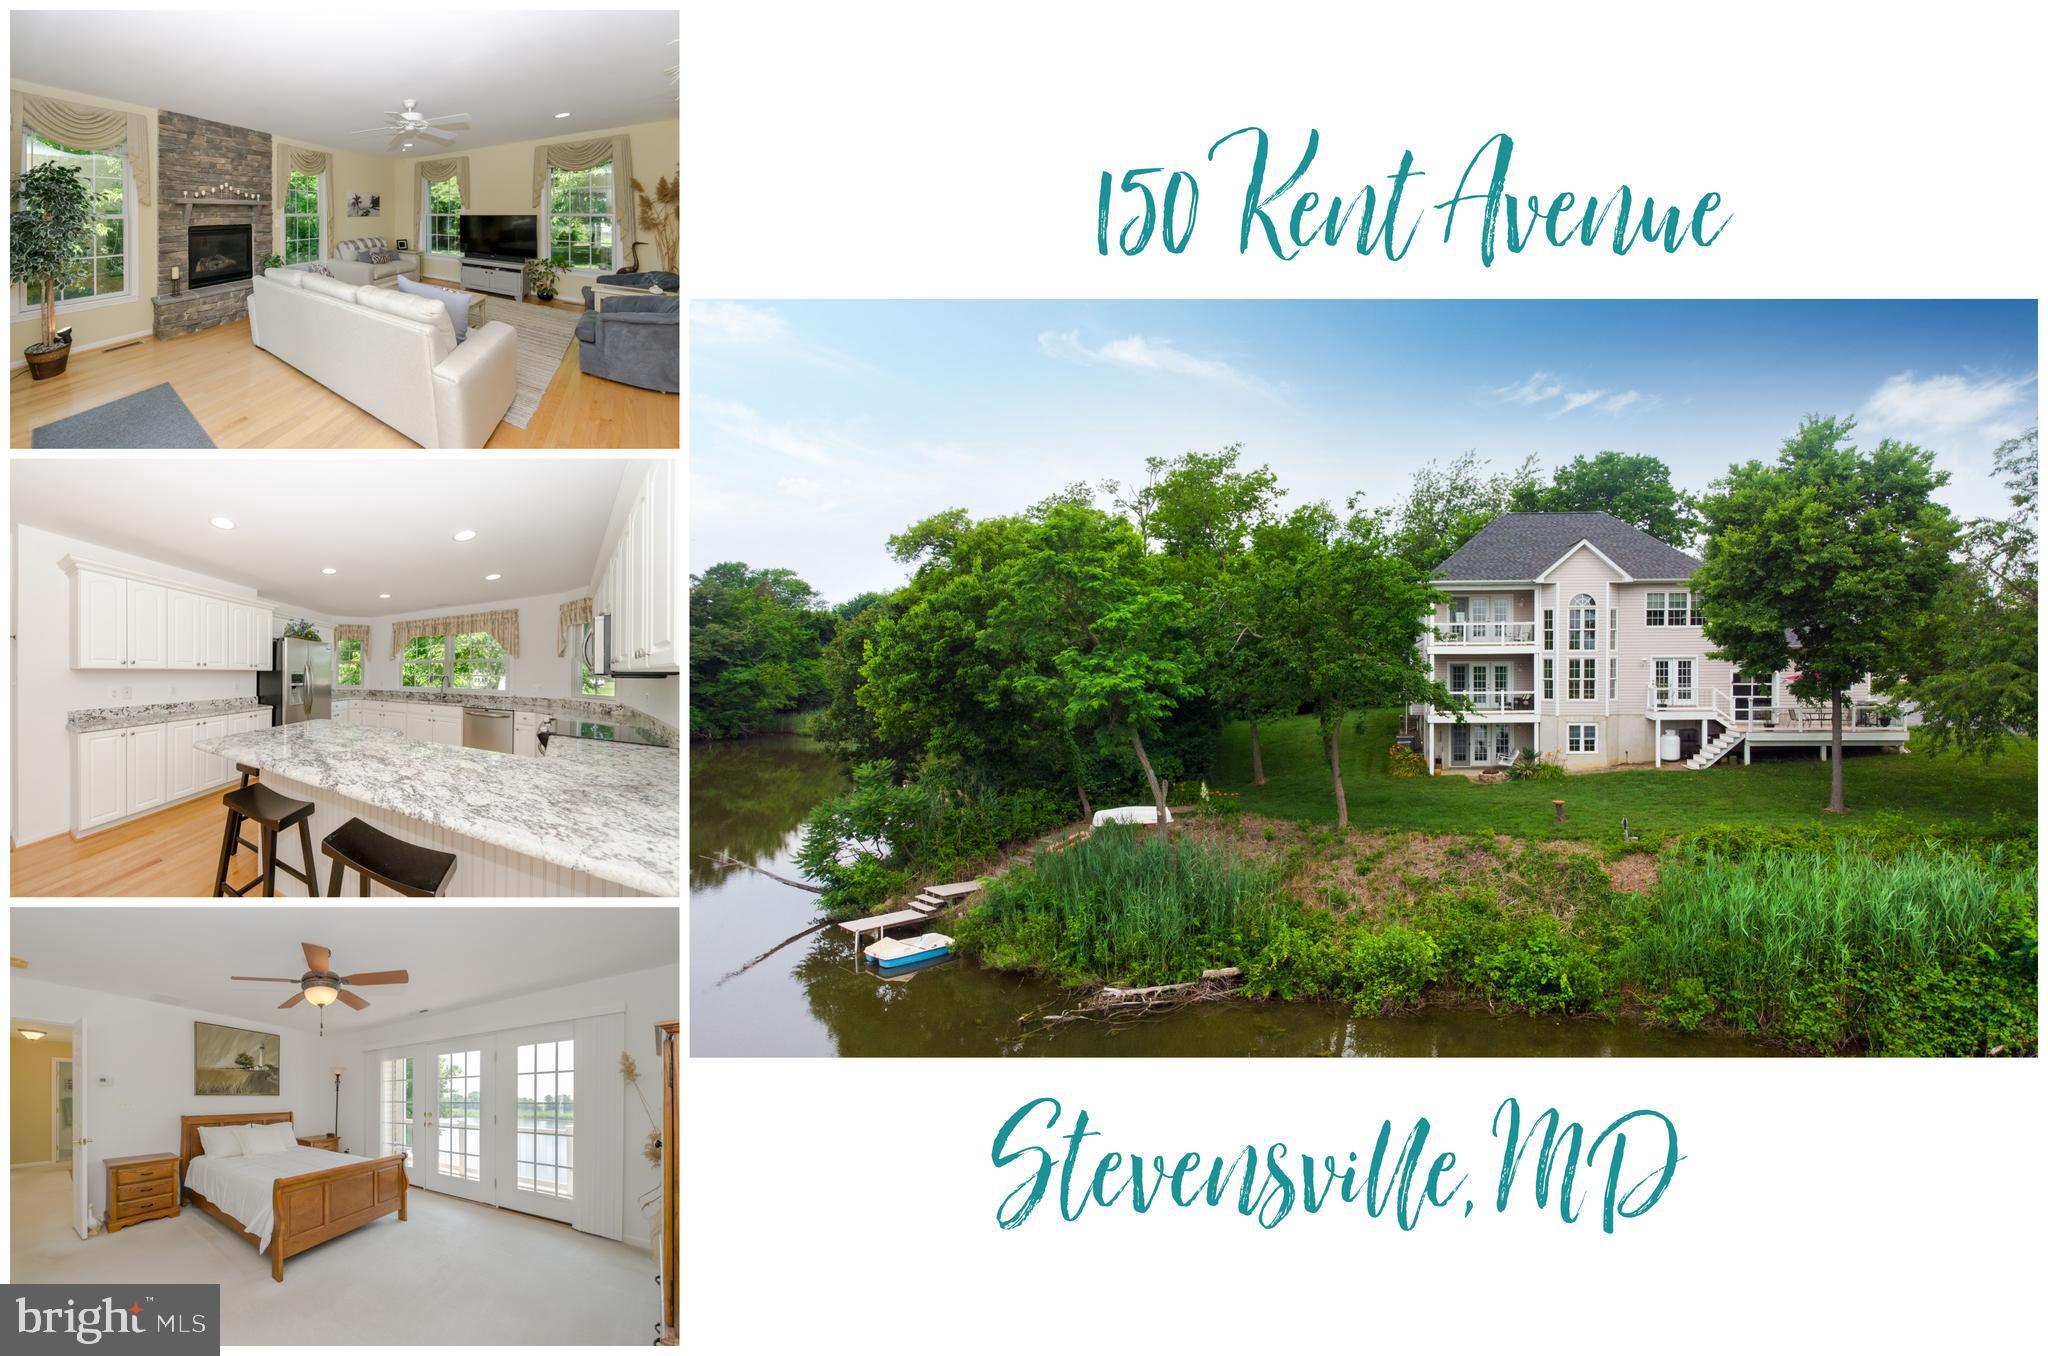 **AVAILABLE FURNISHED** Never before listed, this 3 level custom home with 311 feet of WATERFRONT that wraps around two sides of the property  will surprise you at every turn. With over 3,000 sq ft of living space perfectly perched and elevated (NO FLOOD INSURANCE REQUIRED) on over a 1/2 acre lot makes the view feel more like a cruise ship than a house. Yet, while inside you'll fall in love with the details that just feel like home. From the large country kitchen with granite countertops and stainless steel appliances to the family room with propane stone fireplace, to the master suite with private balcony, the walk out basement that's the perfect space for a guest suite or game room or the 3 car garage with built in waterfront man cave!! Bring your kayak or small boats to enjoy the peacefulness of the lake and watch the sunrise or just enjoy the many animal visitors on the property.  Crab in your backyard and then enjoy your feast on any one of the 4 decks or patio.  This is your chance to own a piece of waterfront heaven on Kent Island. Don't wait. Now is the time to make THE SHORE HOME! Check out the Drone Video Here https://youtu.be/3Svt4iHDmu4